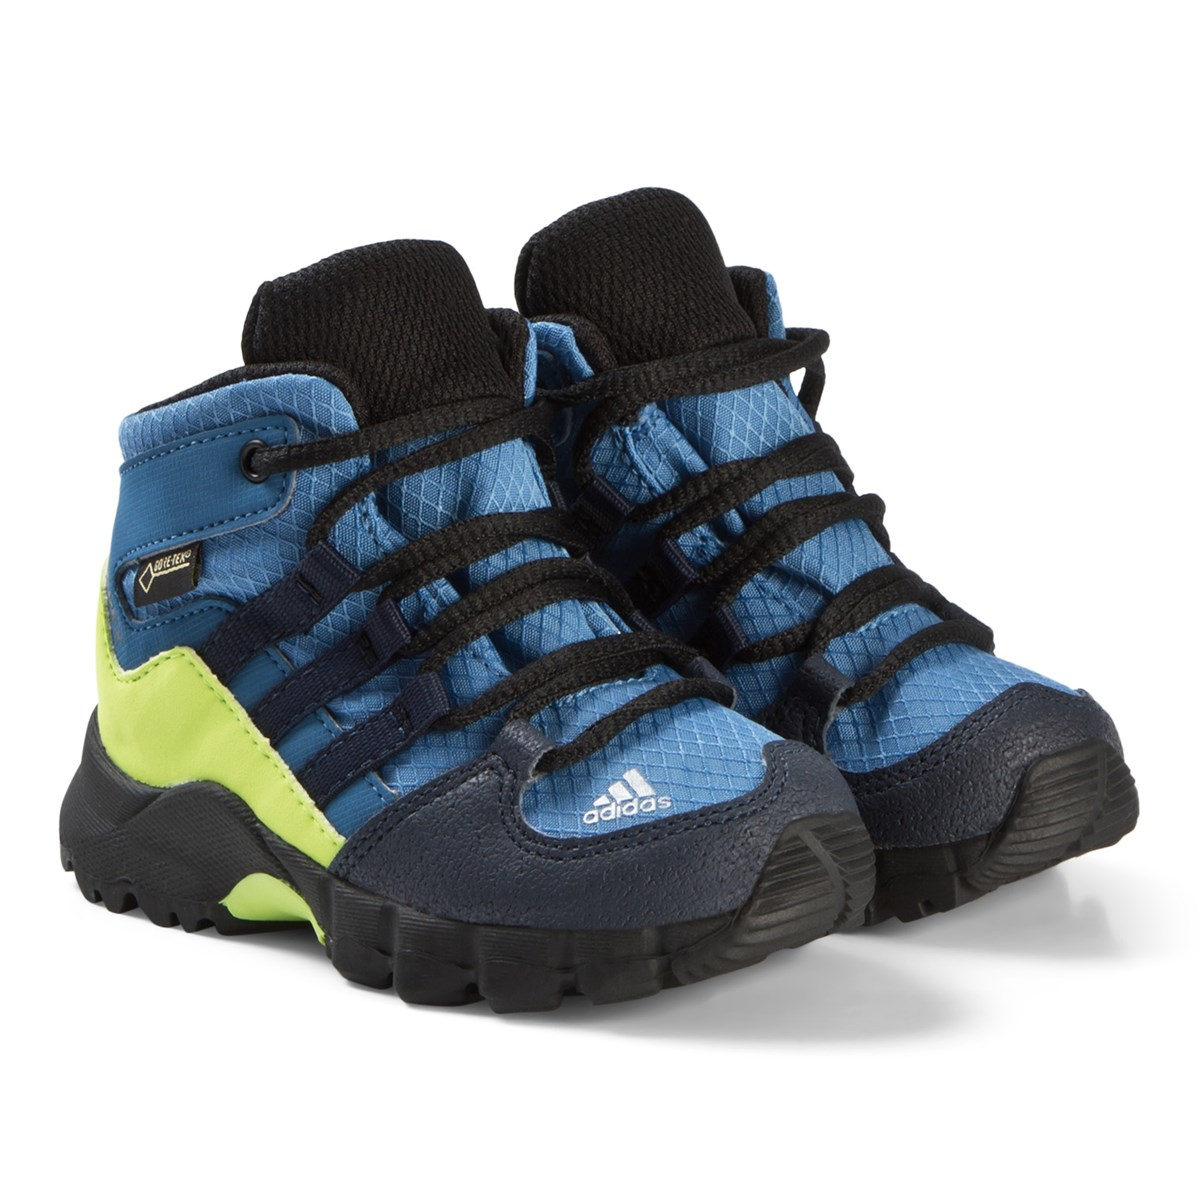 size 40 b7643 2ac5f adidas performance terrex mid gtx shoes blue and green